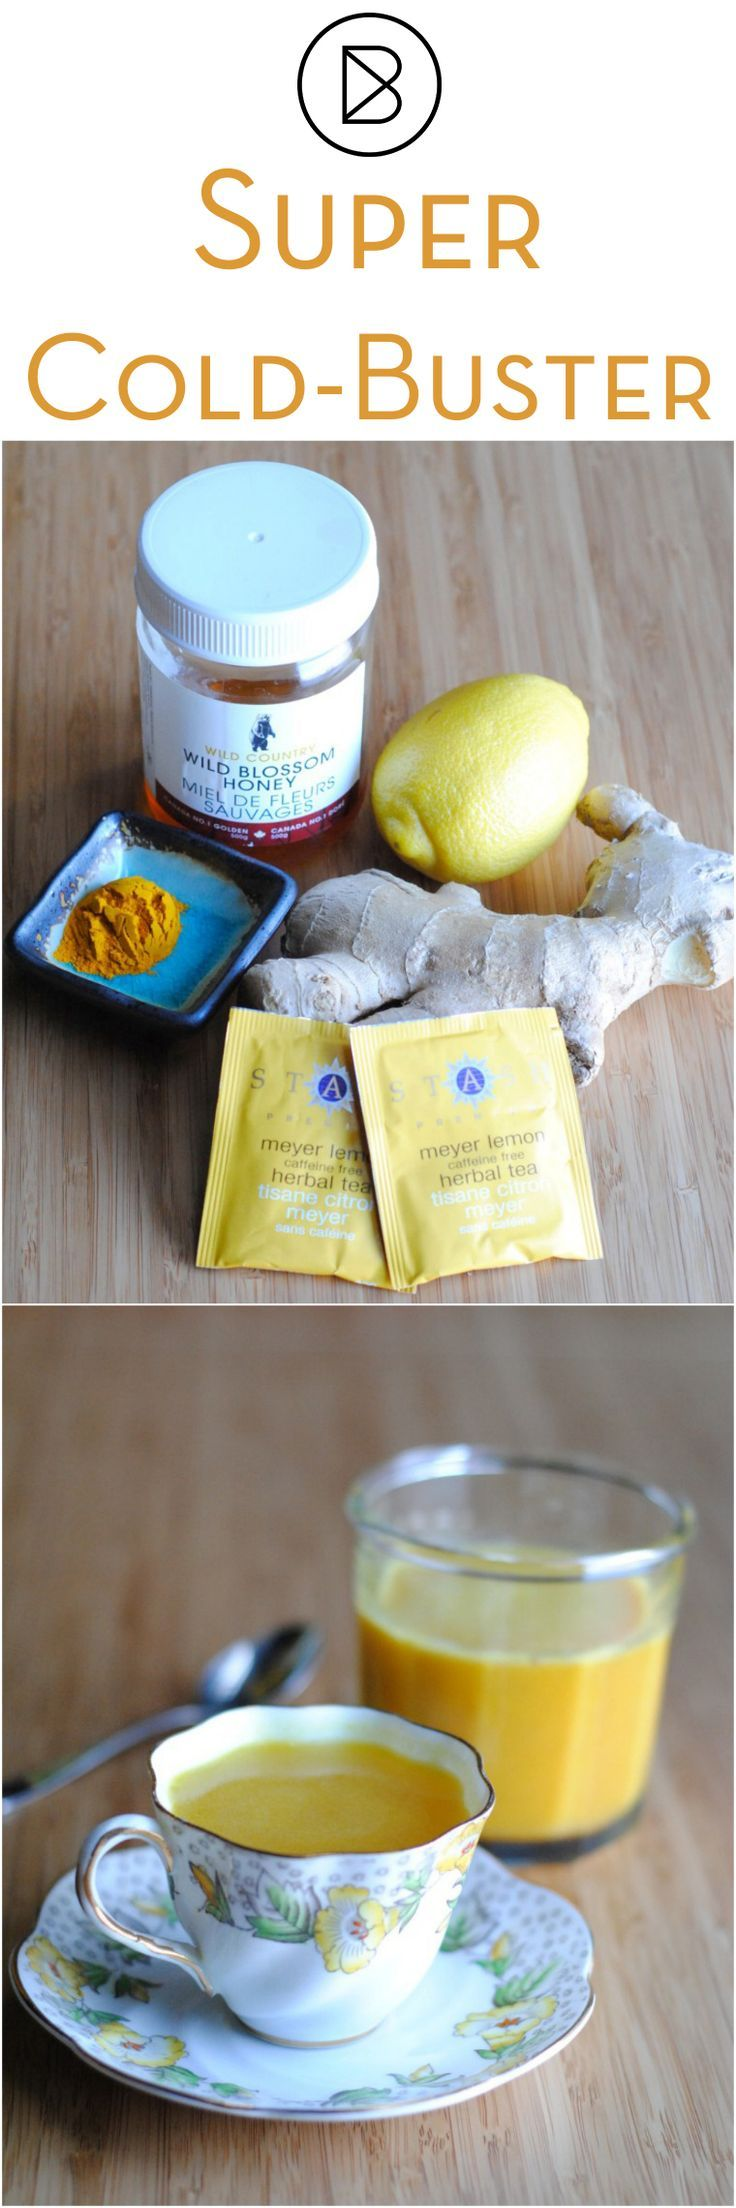 Super Cold-Buster! This anti-inflammatory concentrate is soothing when you have a cold or flu. Replace the honey with maple syrup or agave for a 100% vegan version.   http://theblenderist.com/cold-buster-anti-inflammatory-concentrate/ #theraflu #neocitran #lemsip